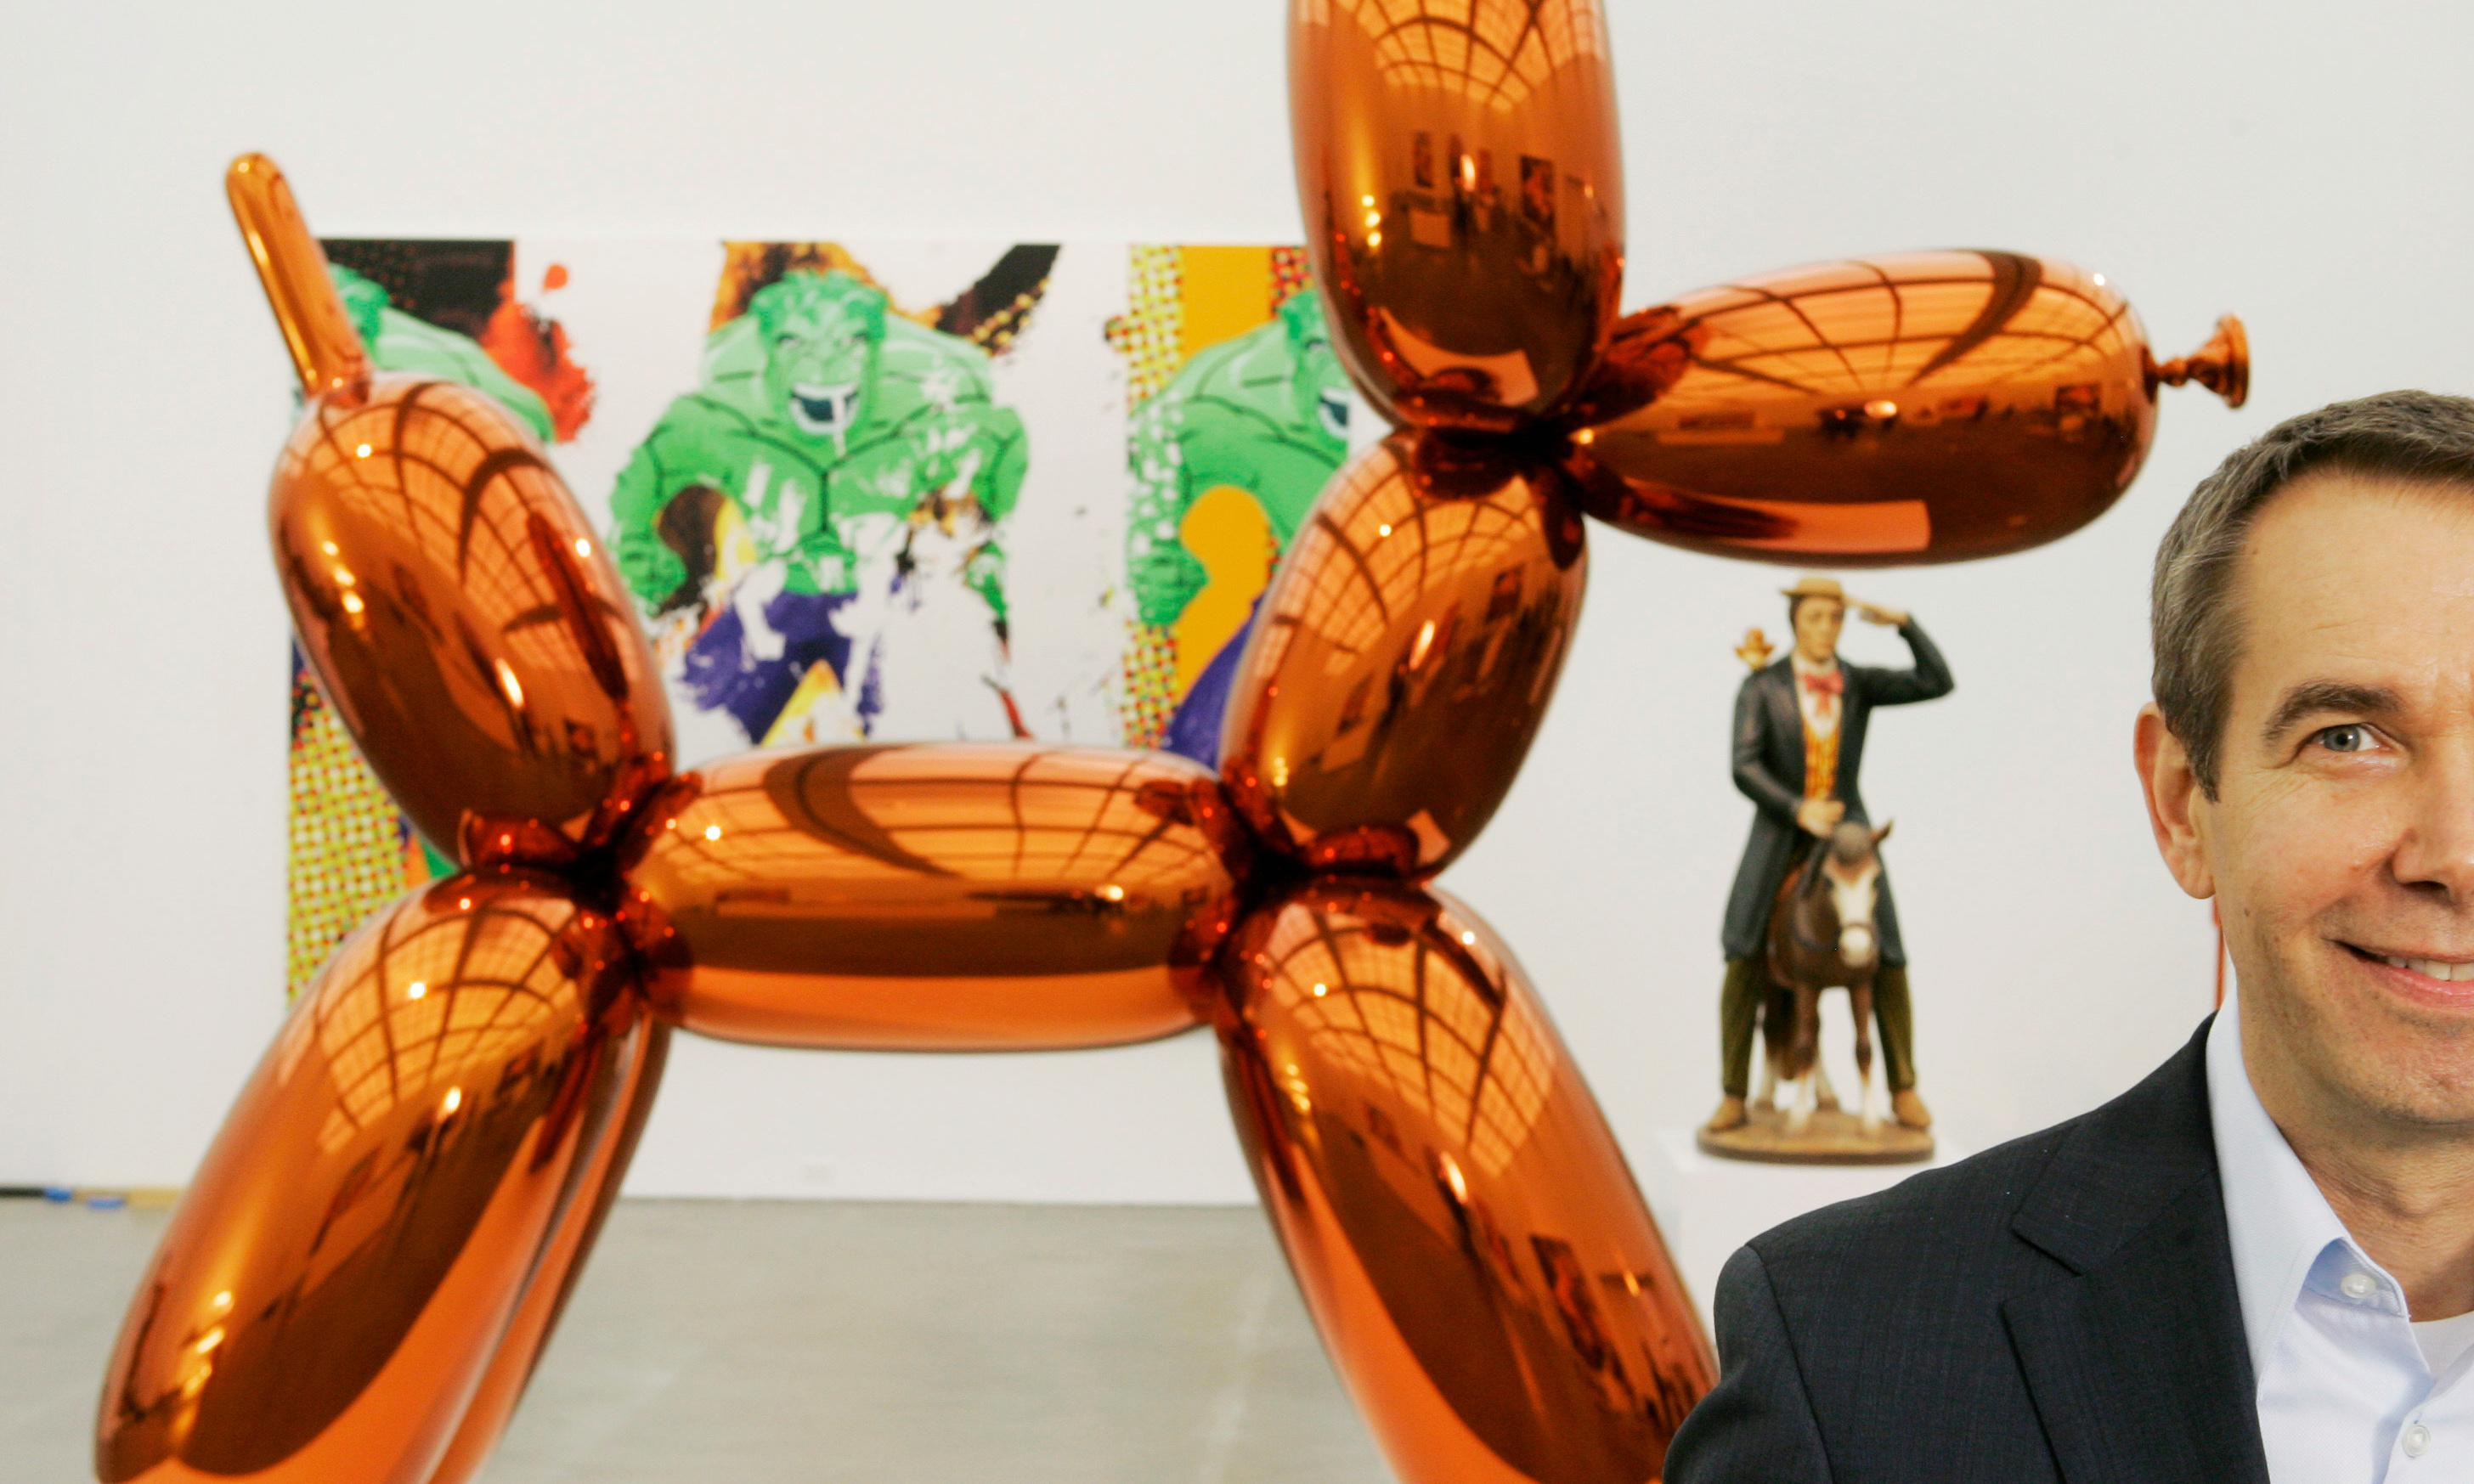 'Wow, $91m!' – Jeff Koons on blowup dogs, record prices and his row with Paris